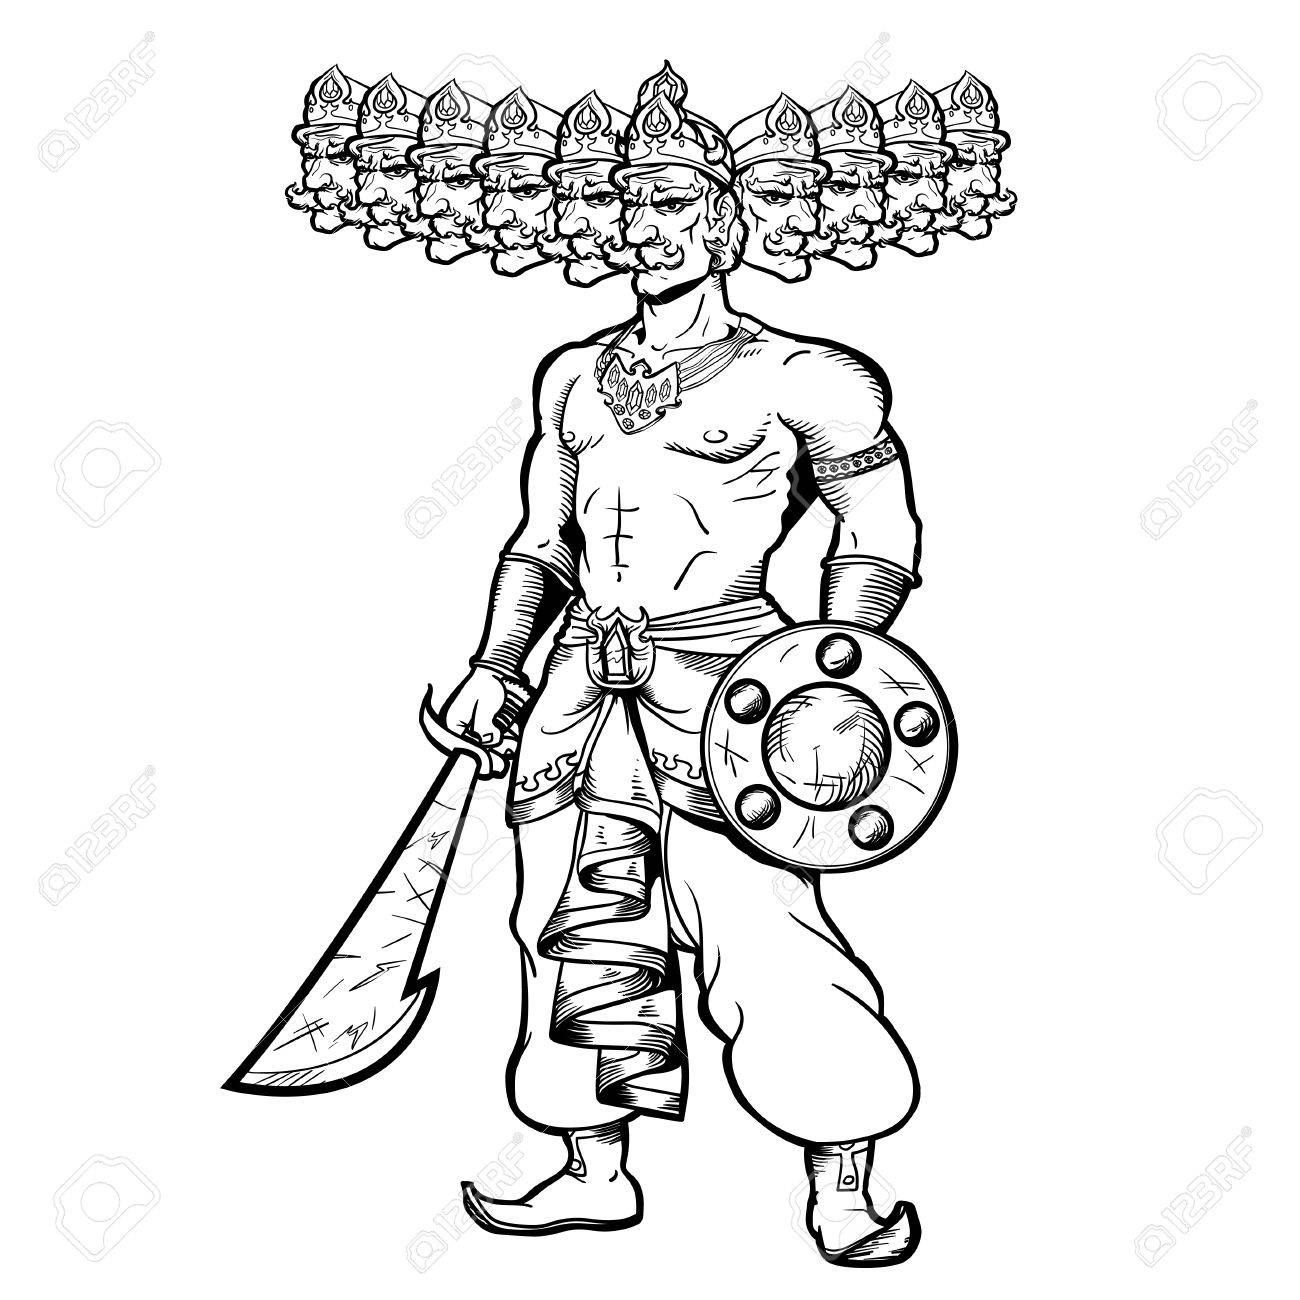 1300x1300 India God With Ten Goals. Ravana Holding A Sword And Shield. Stock